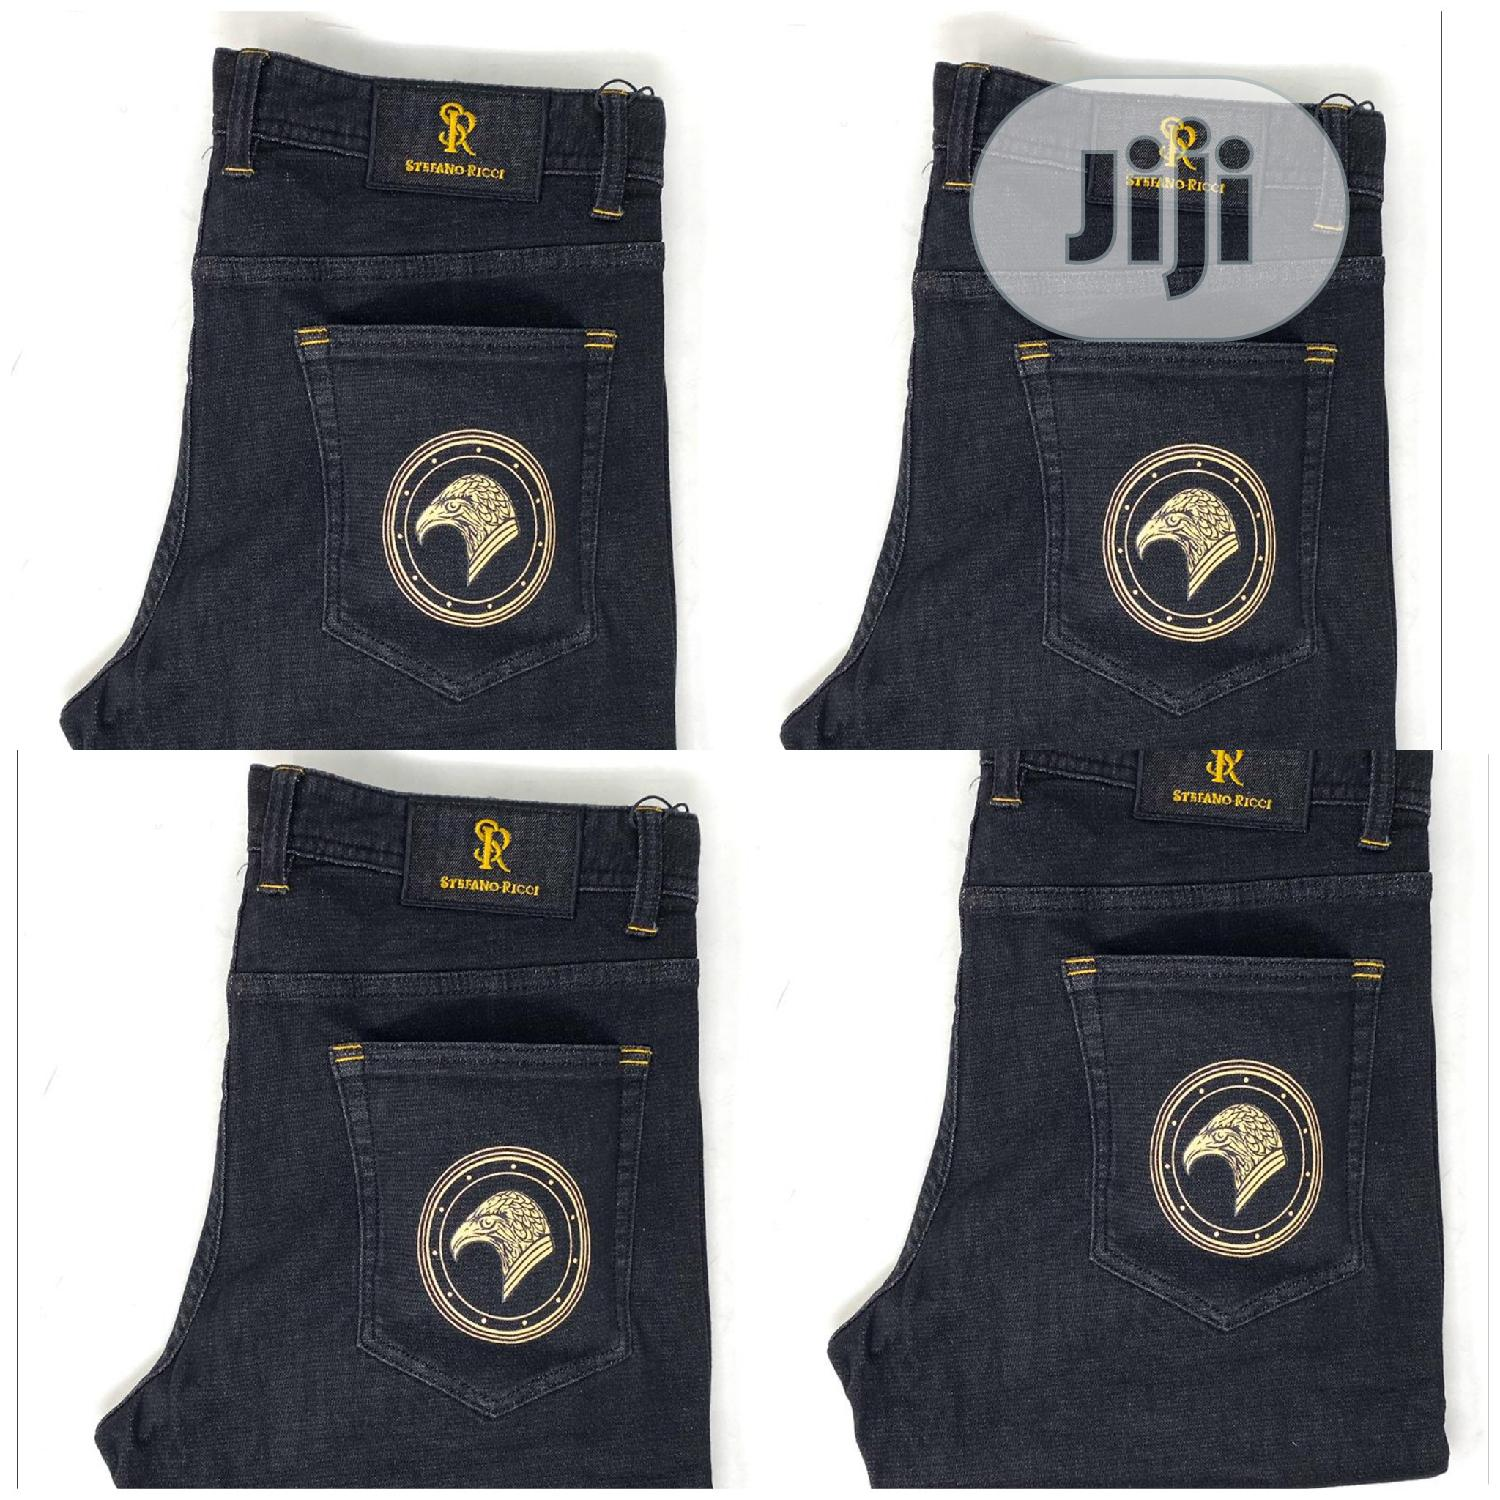 Original Stefaon Ricci Navy Blue Jeans | Clothing for sale in Surulere, Lagos State, Nigeria